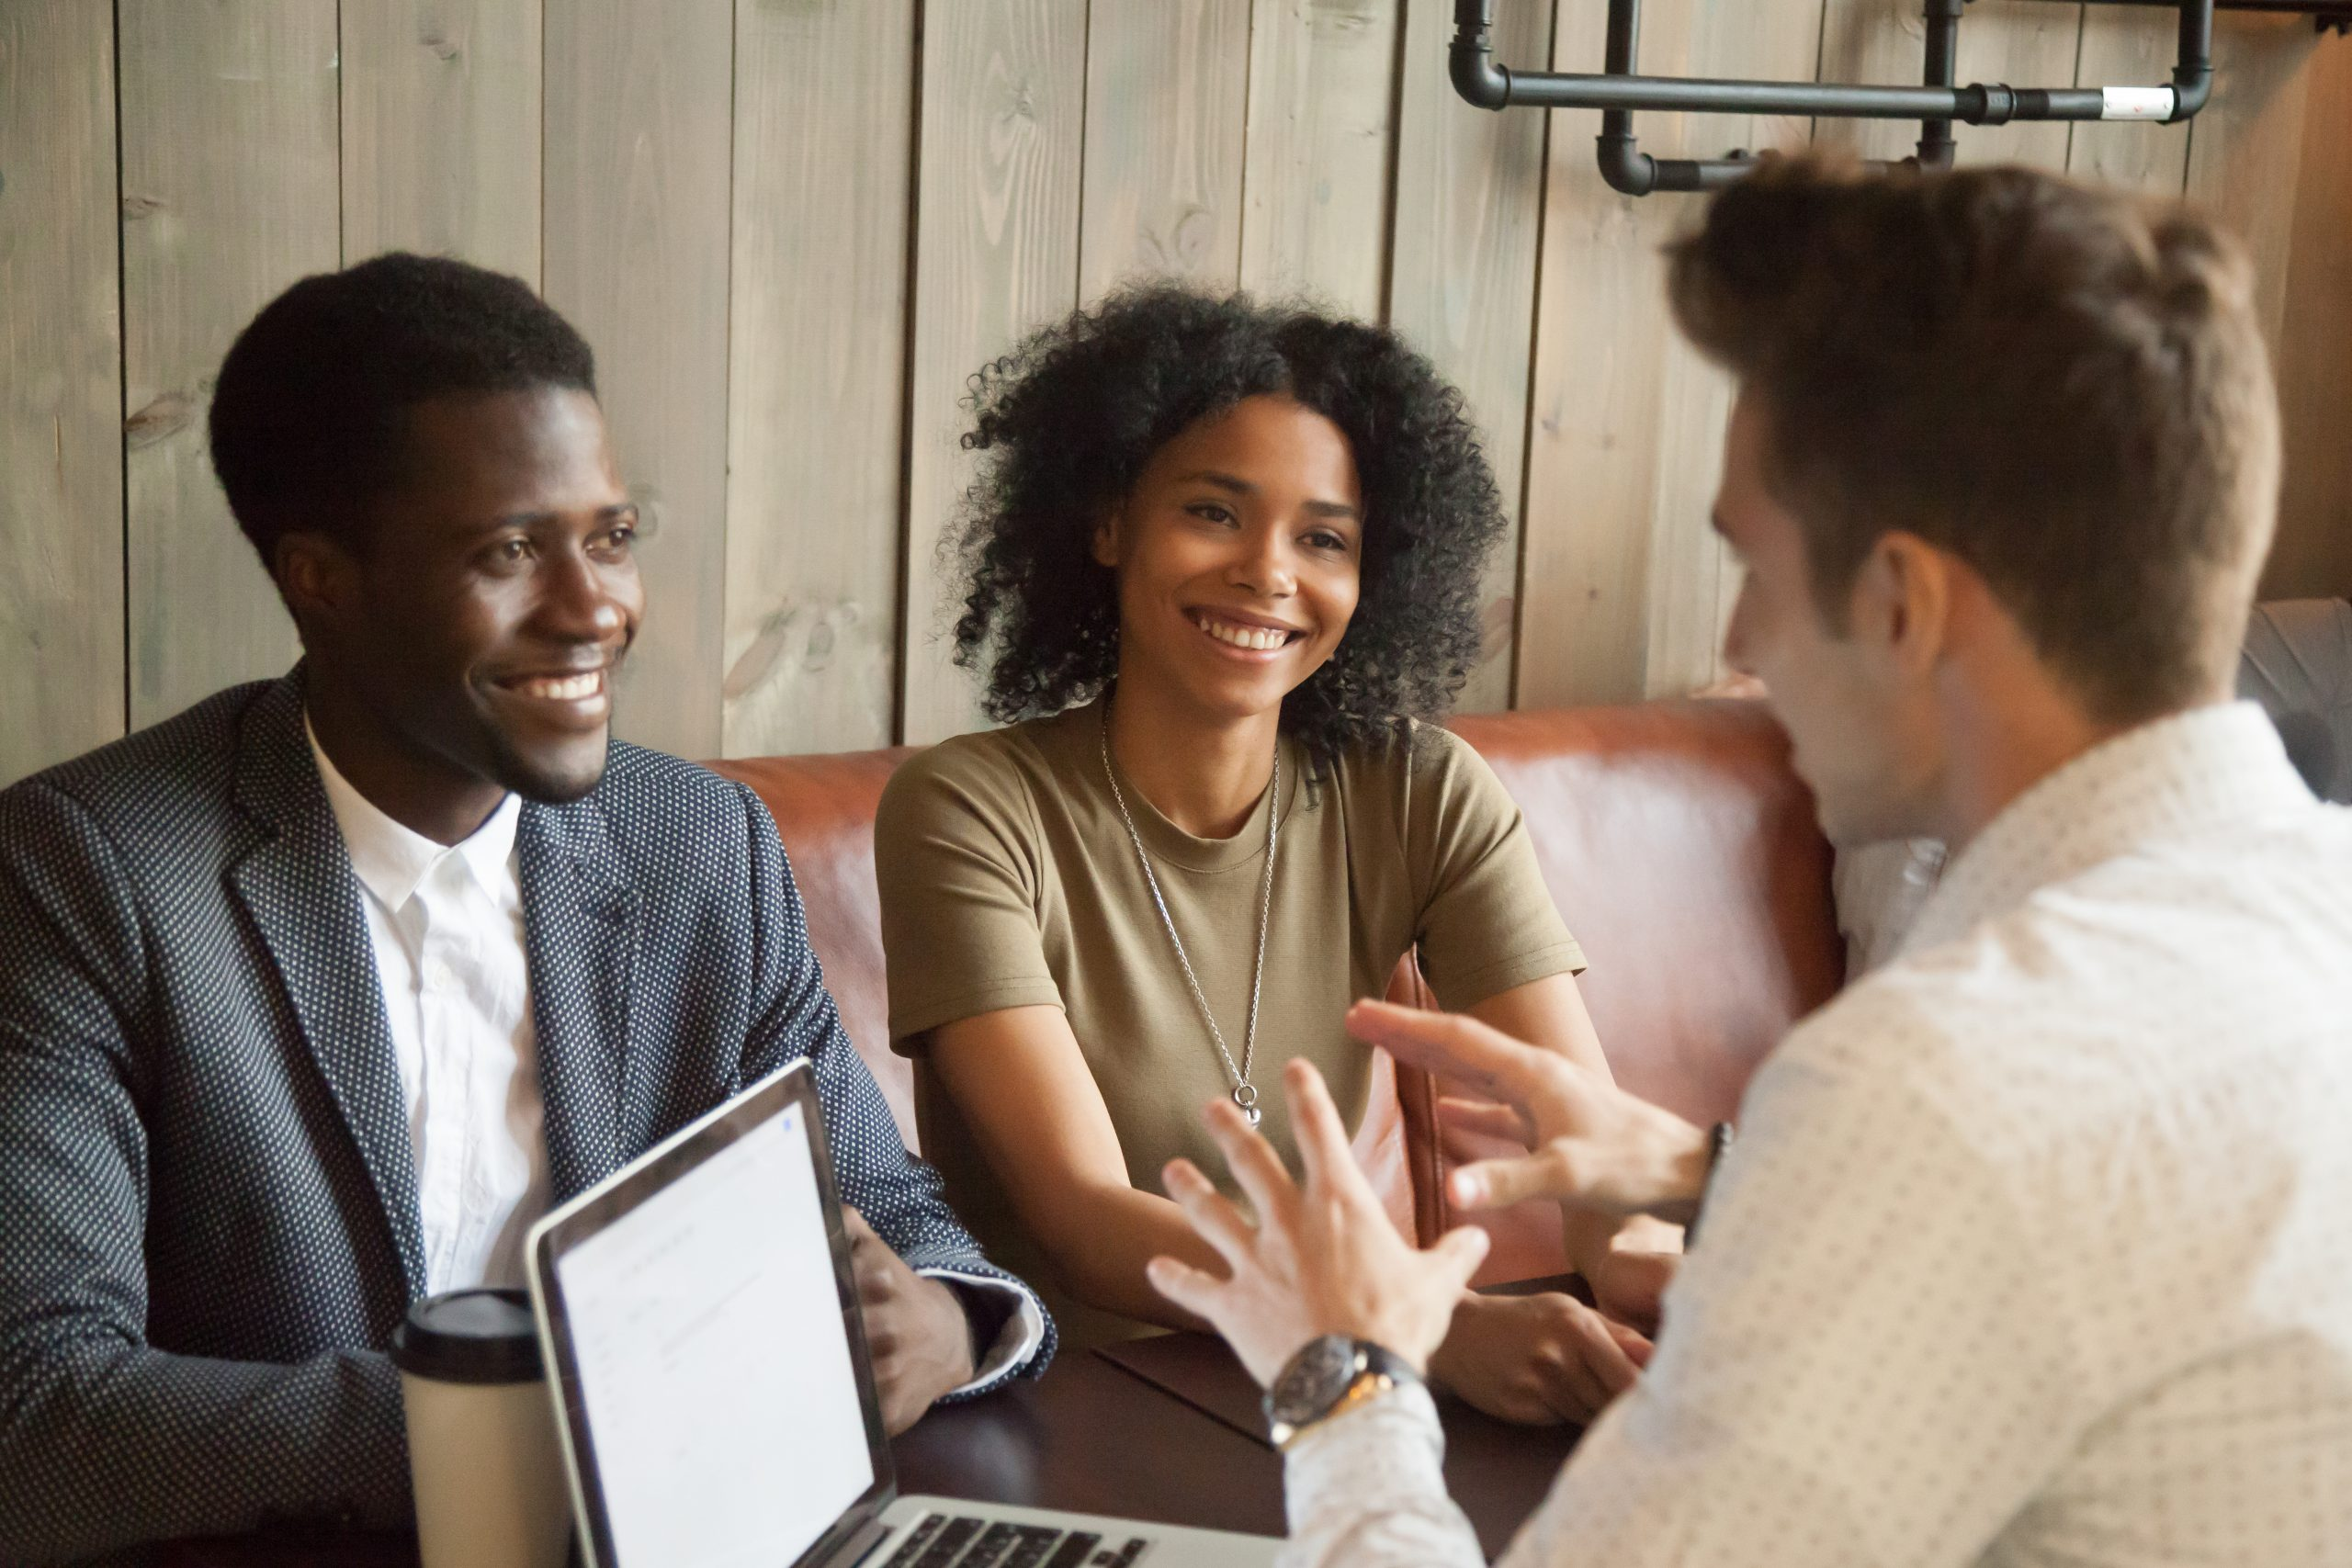 Caucasian architect talking to smiling African American couple, explaining housing project idea in coffee shop, male realtor consulting black clients on property purchase, having conversation in cafe